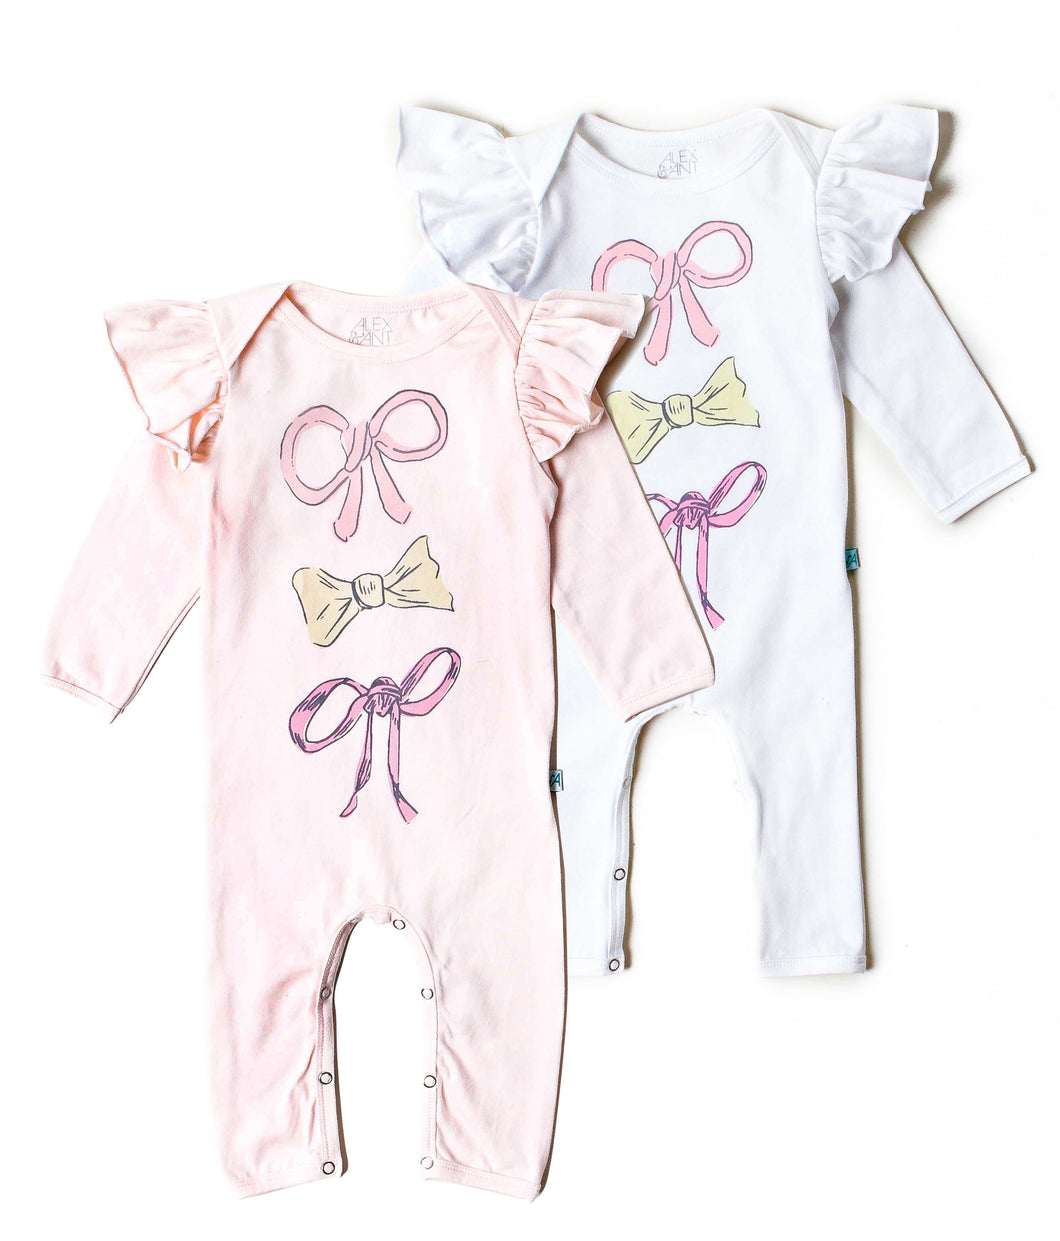 White 3 Bow Onesie- Alex & Ant